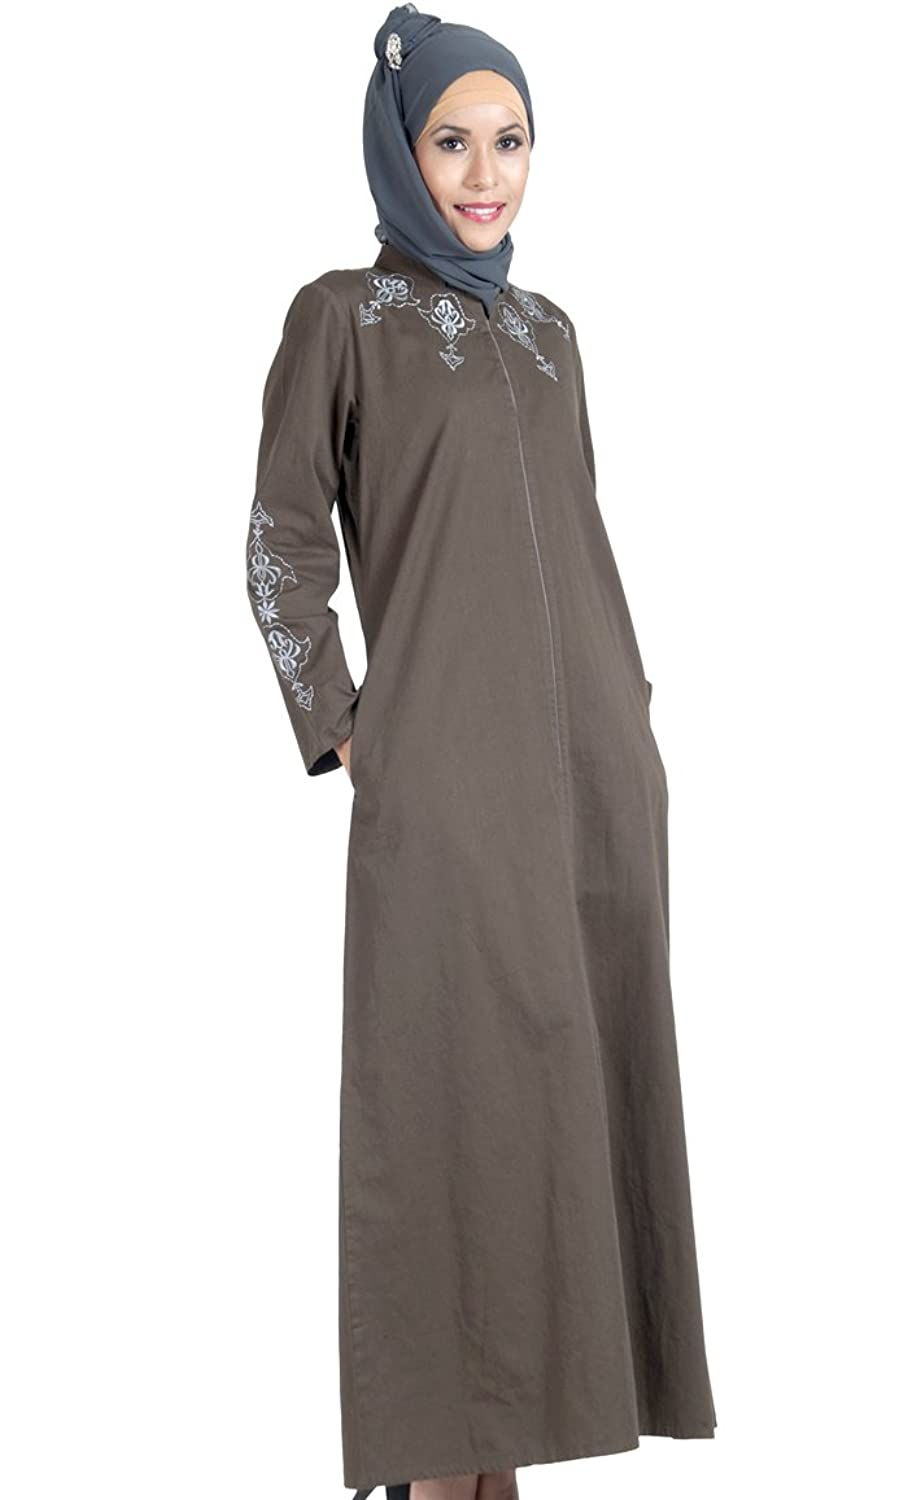 100% Cotton Twill Zipper Abaya Dress